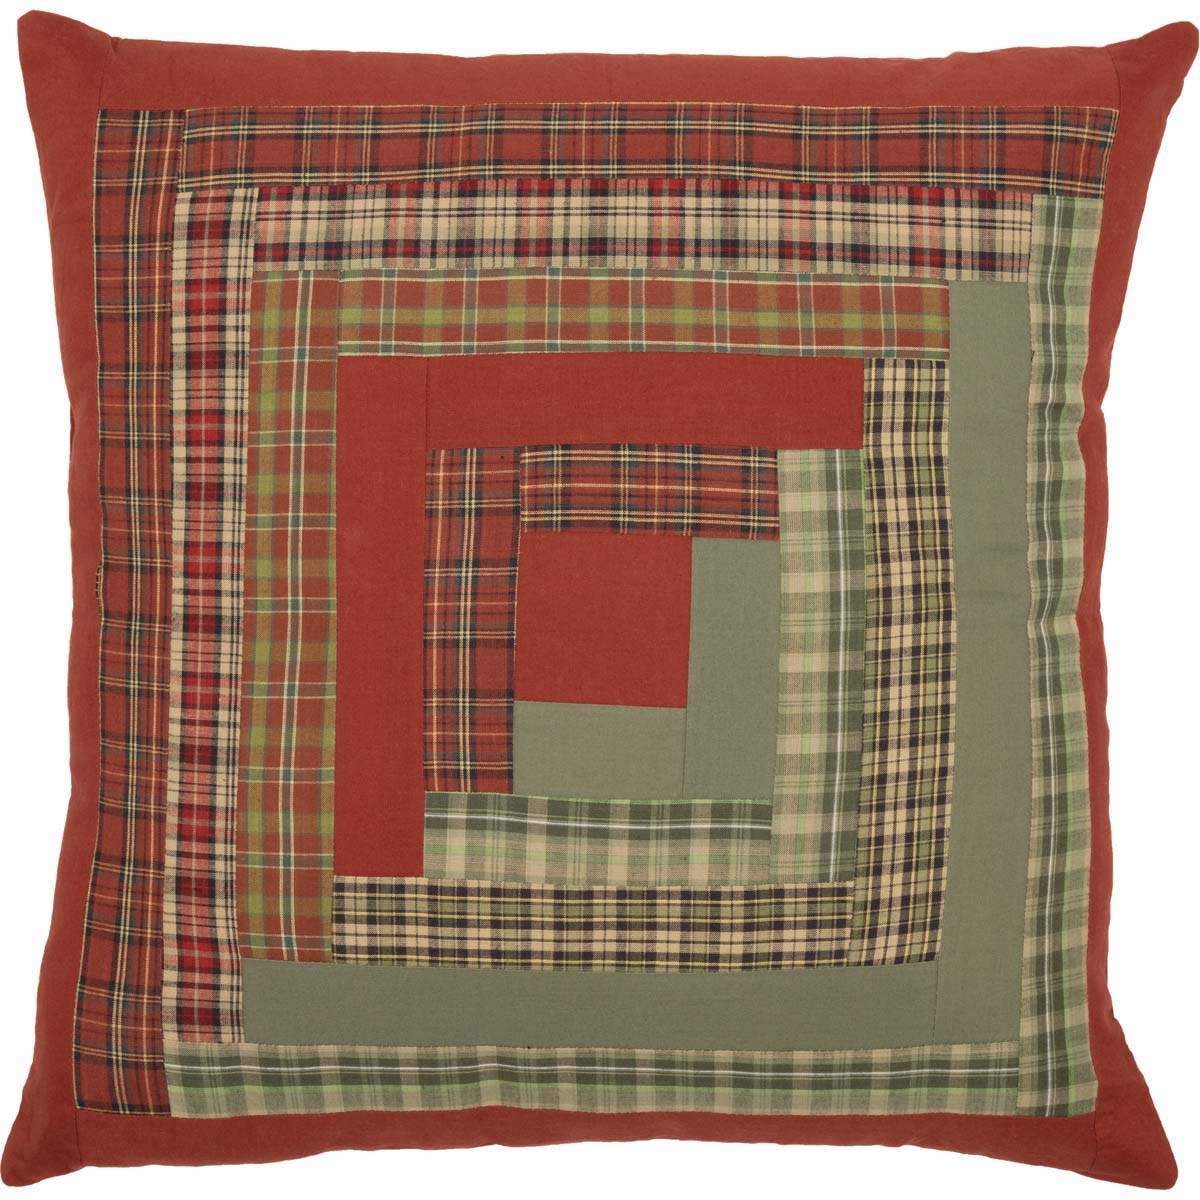 Gatlinburg Patchwork Pillow 18x18